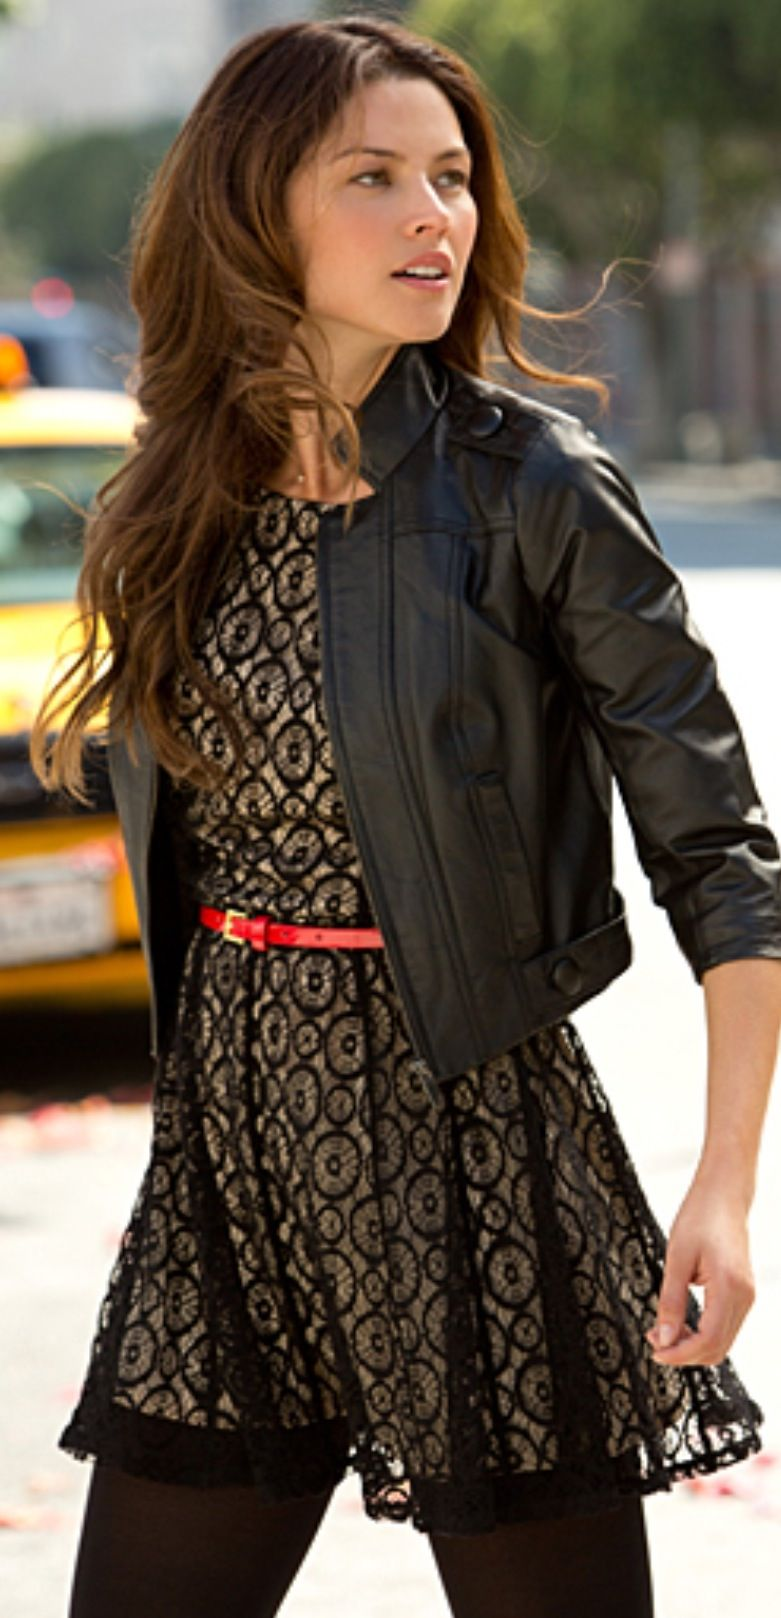 Cute Black Leather Jacket With Lace Black Dress And Some Black Tights With Black Boots Stylish Party Dresses Leather Jacket Dress Leather Dresses [ 1618 x 781 Pixel ]